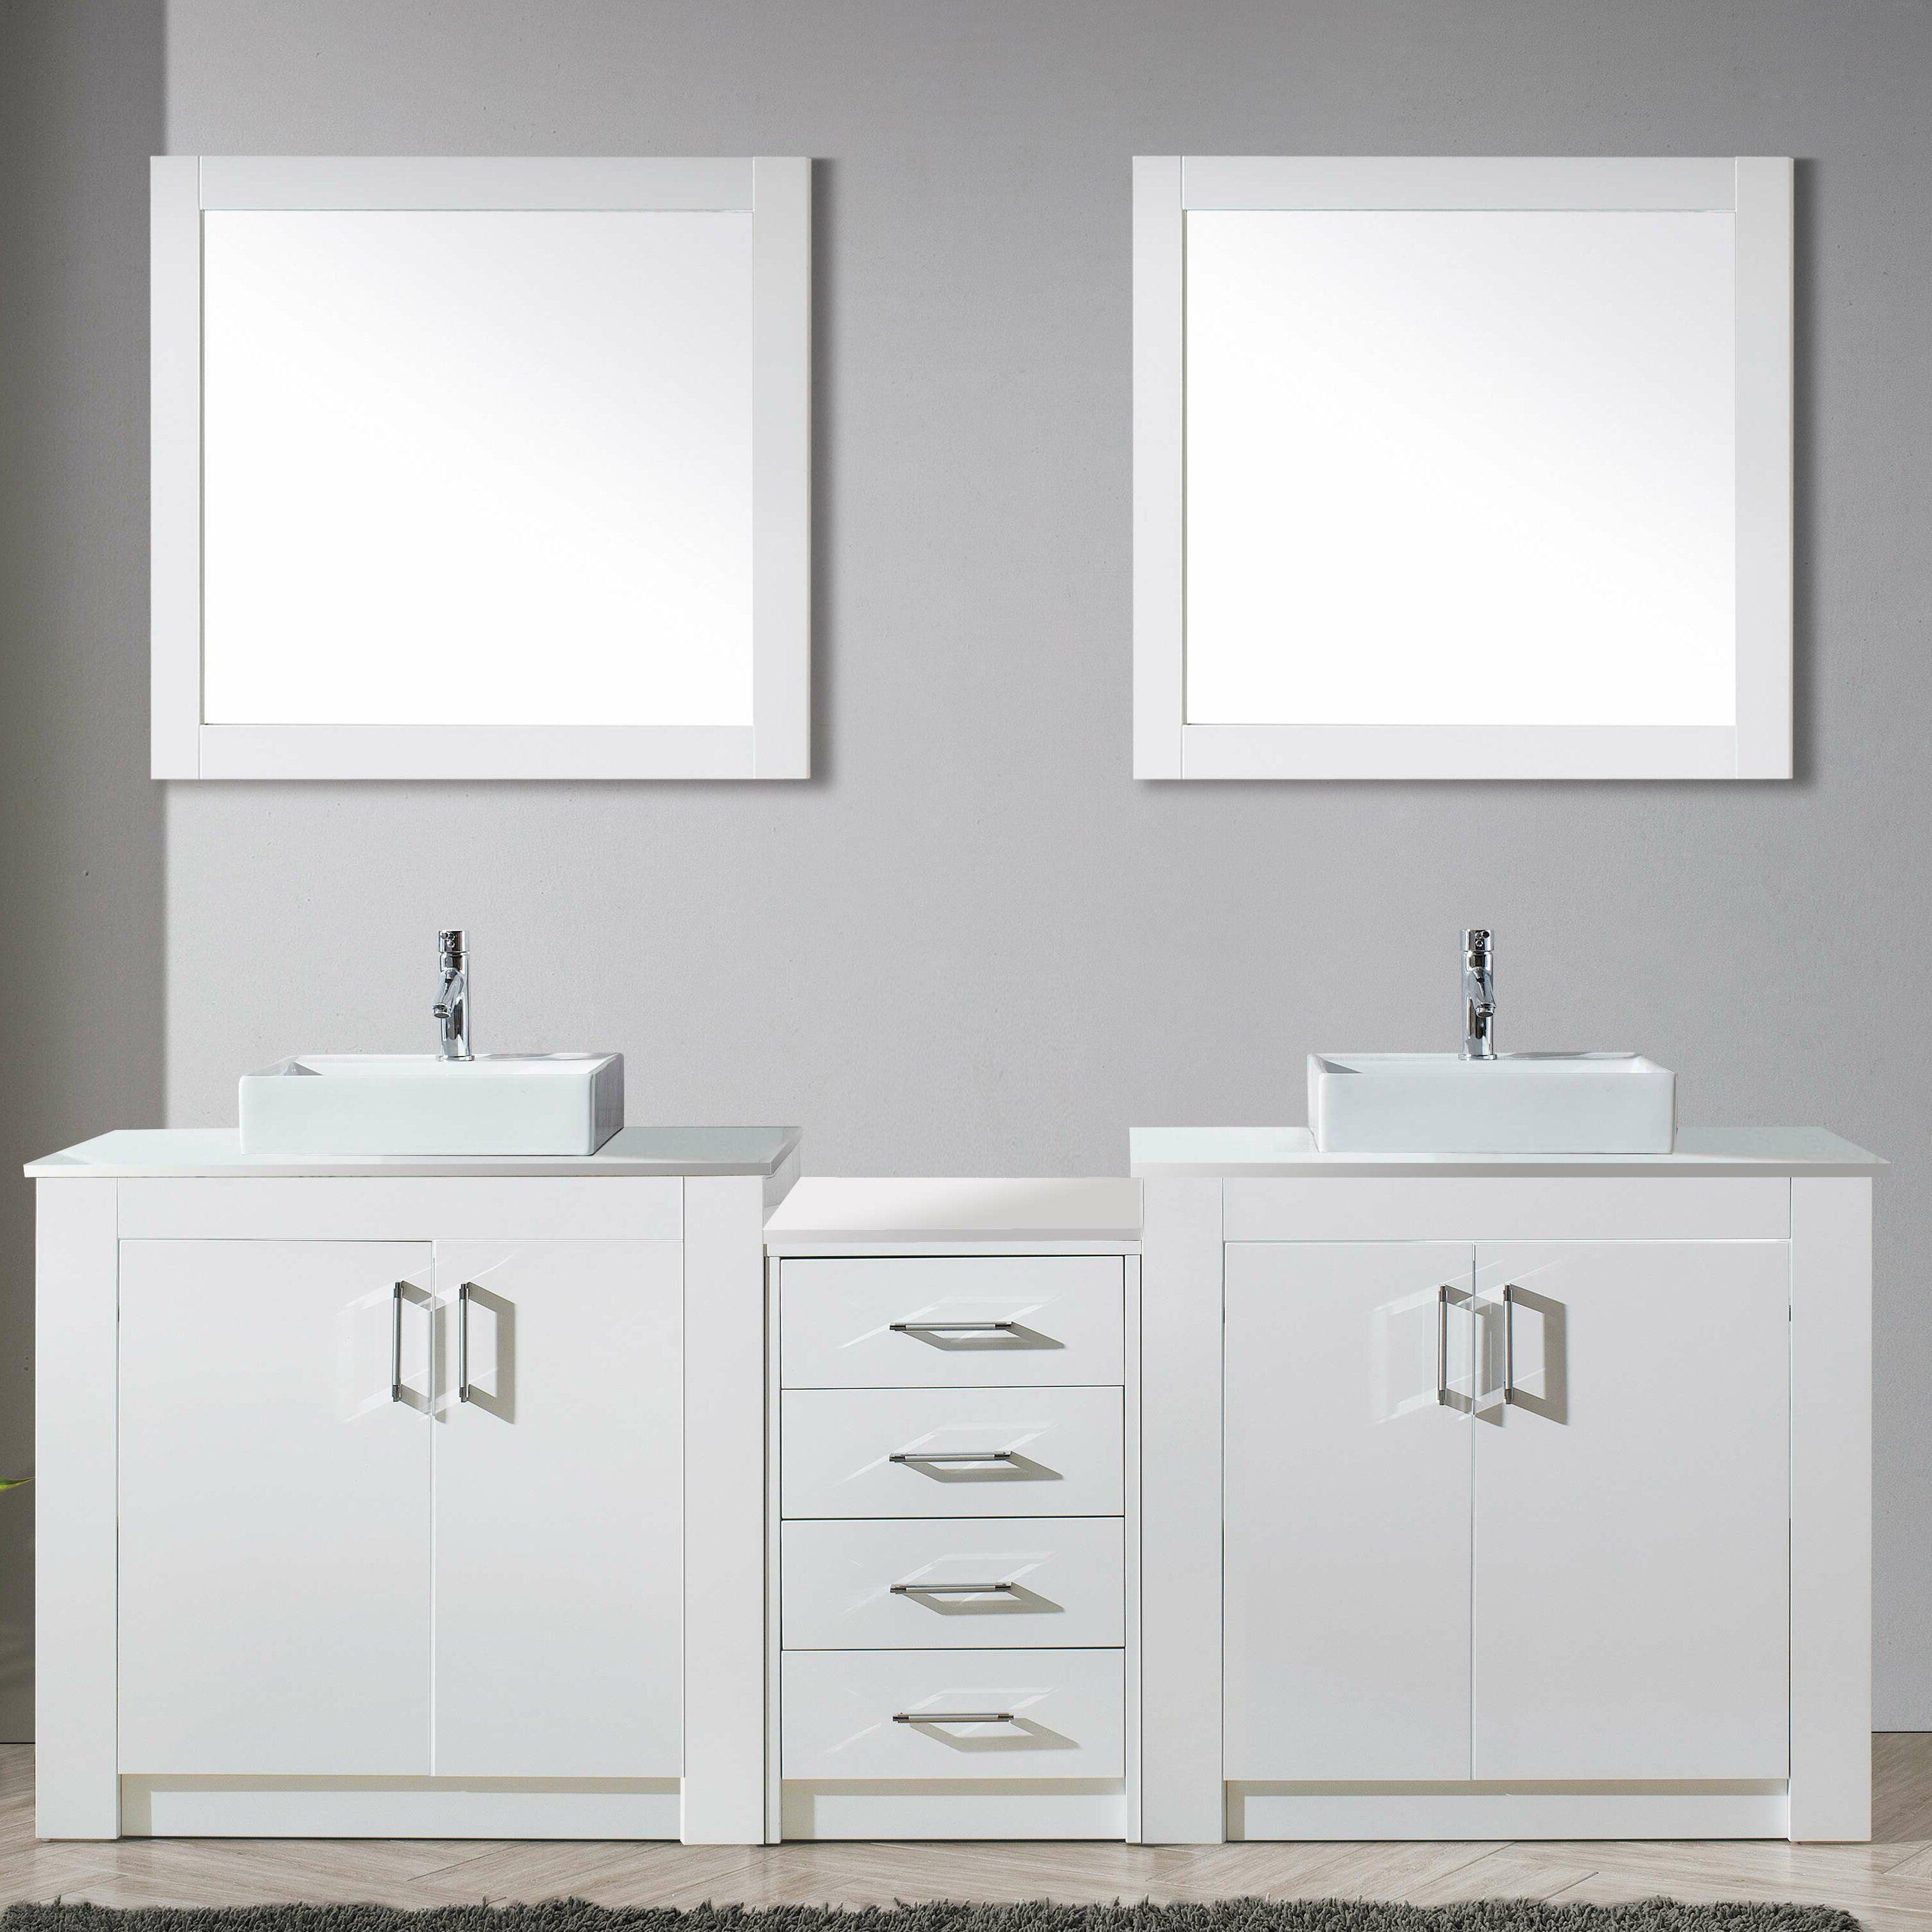 Virtu tavian 93 double bathroom vanity set with stone and for Vanity and mirror set